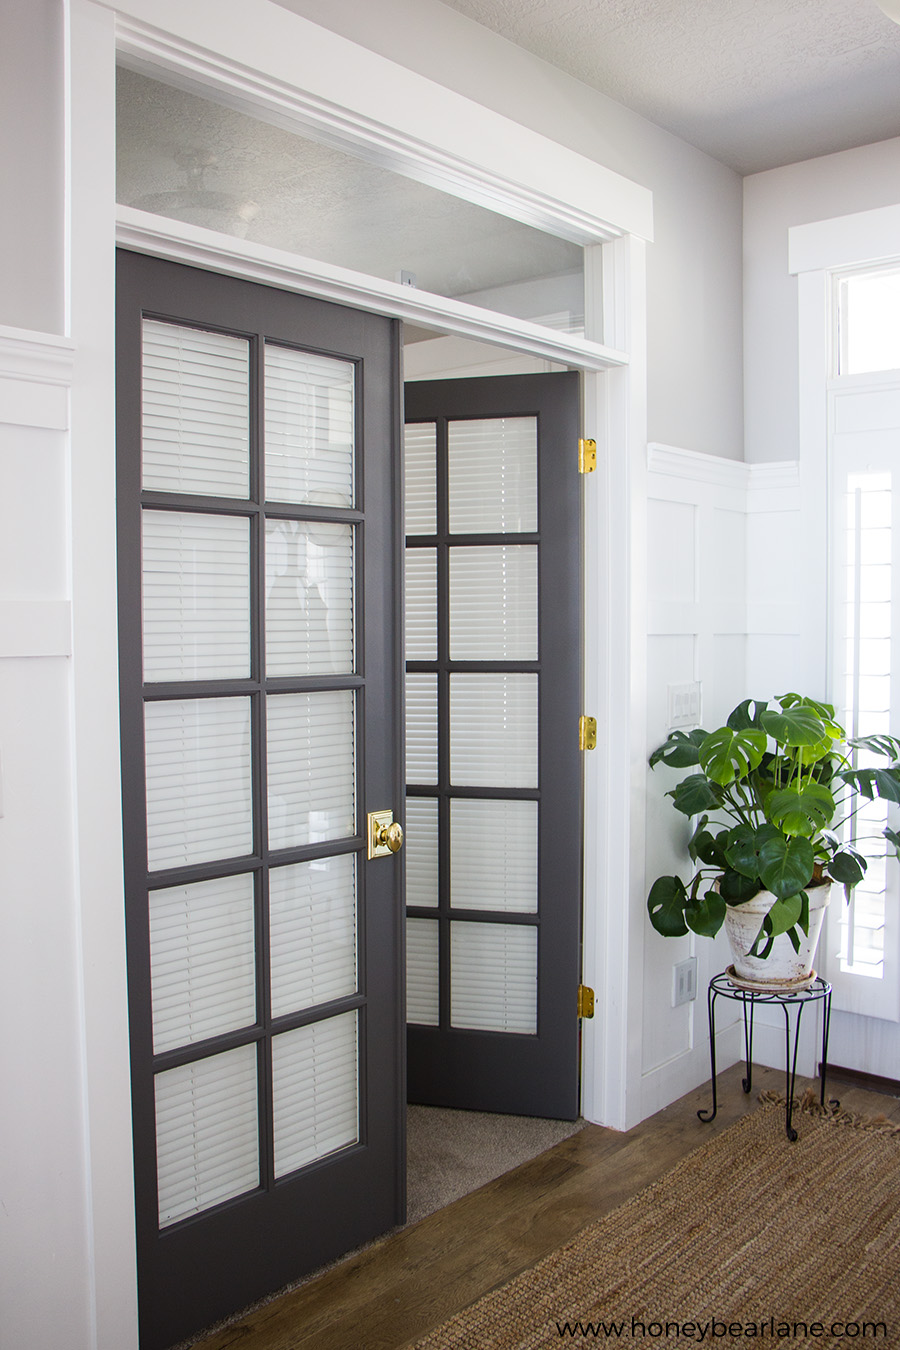 French Doors Makeover Honeybear Lane,United Airlines Carry On Baggage Cost